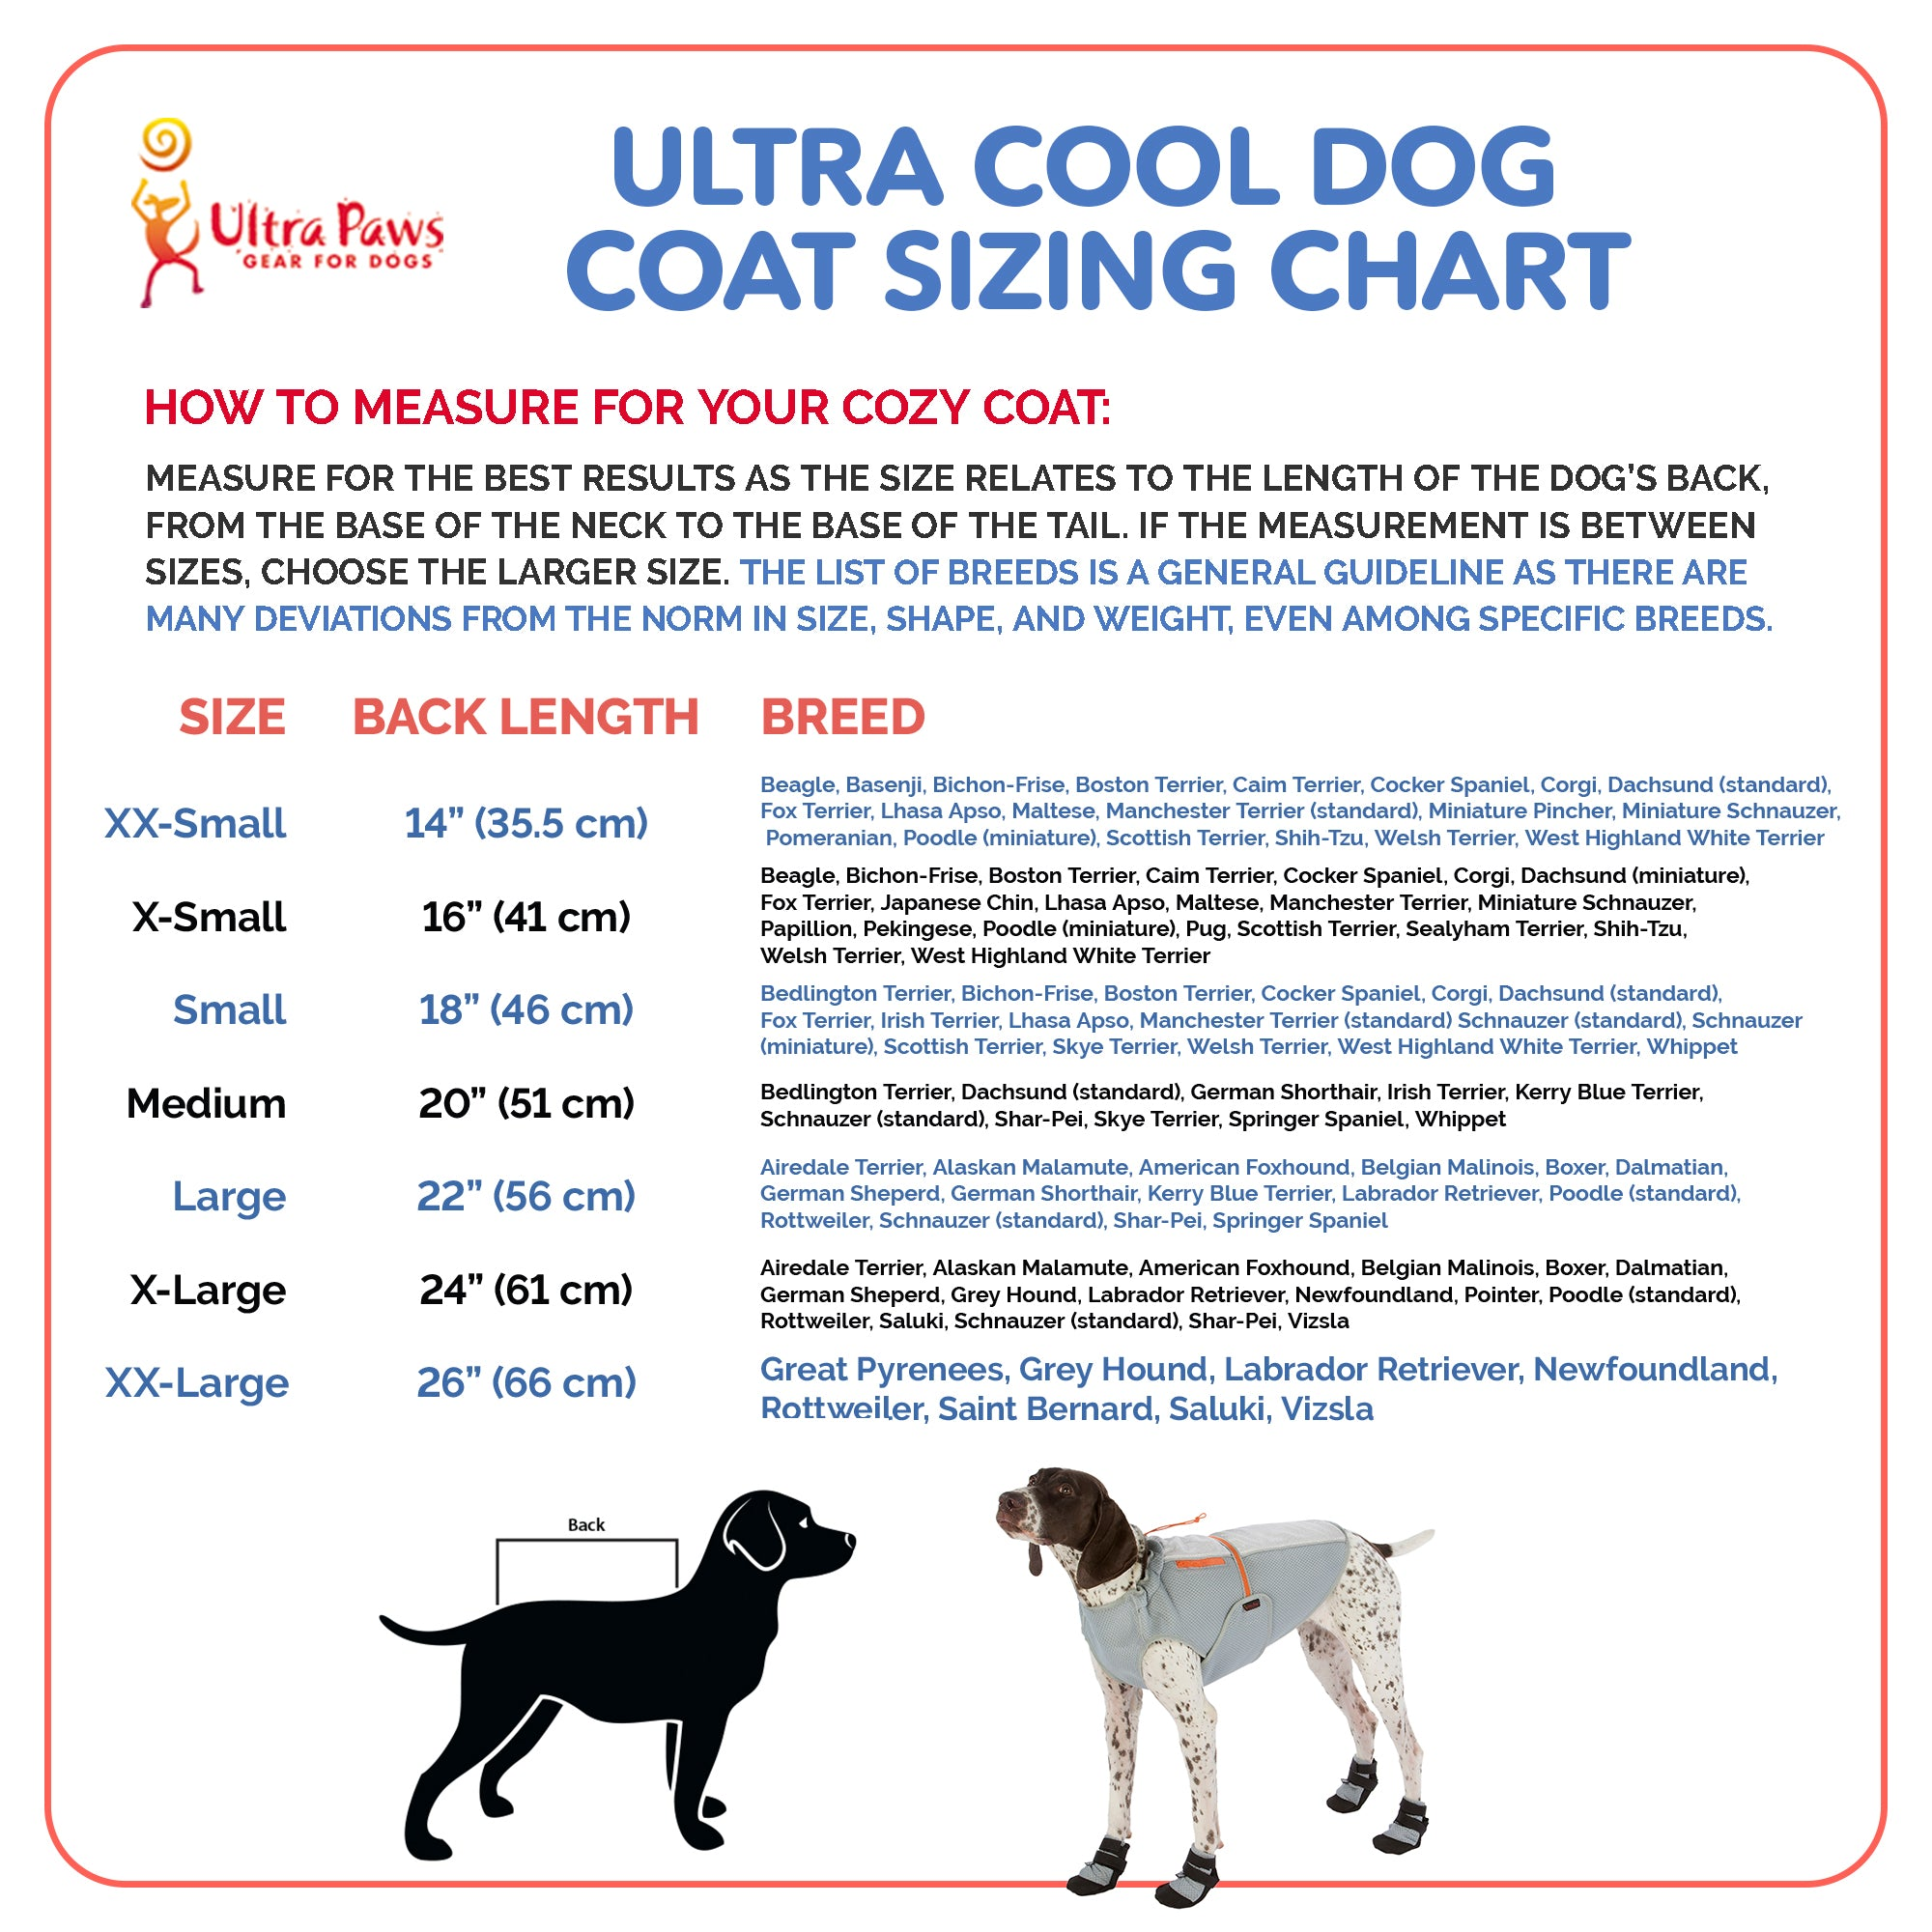 Ultra Paws Ultra Cool Coat Sizing Chart